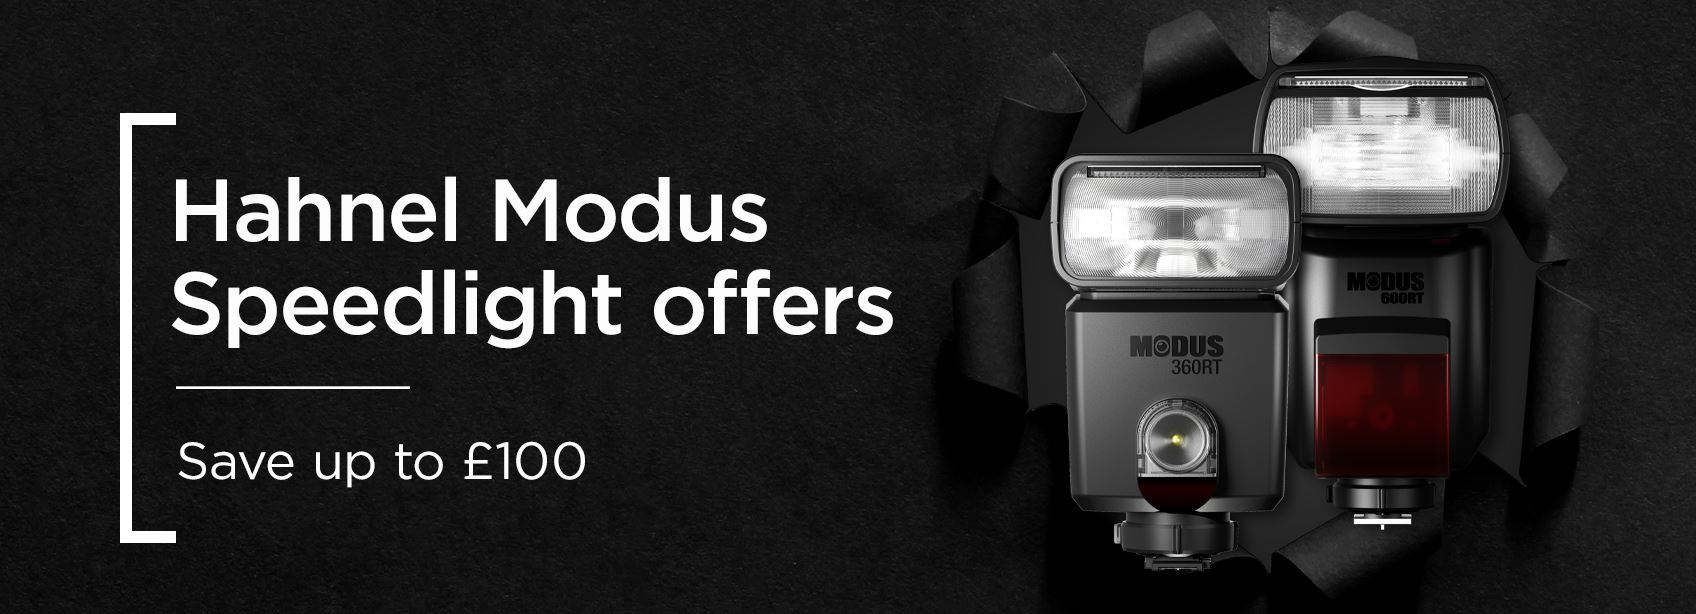 Hahnel Modus Speedlights Black Friday Deals | Early Bird